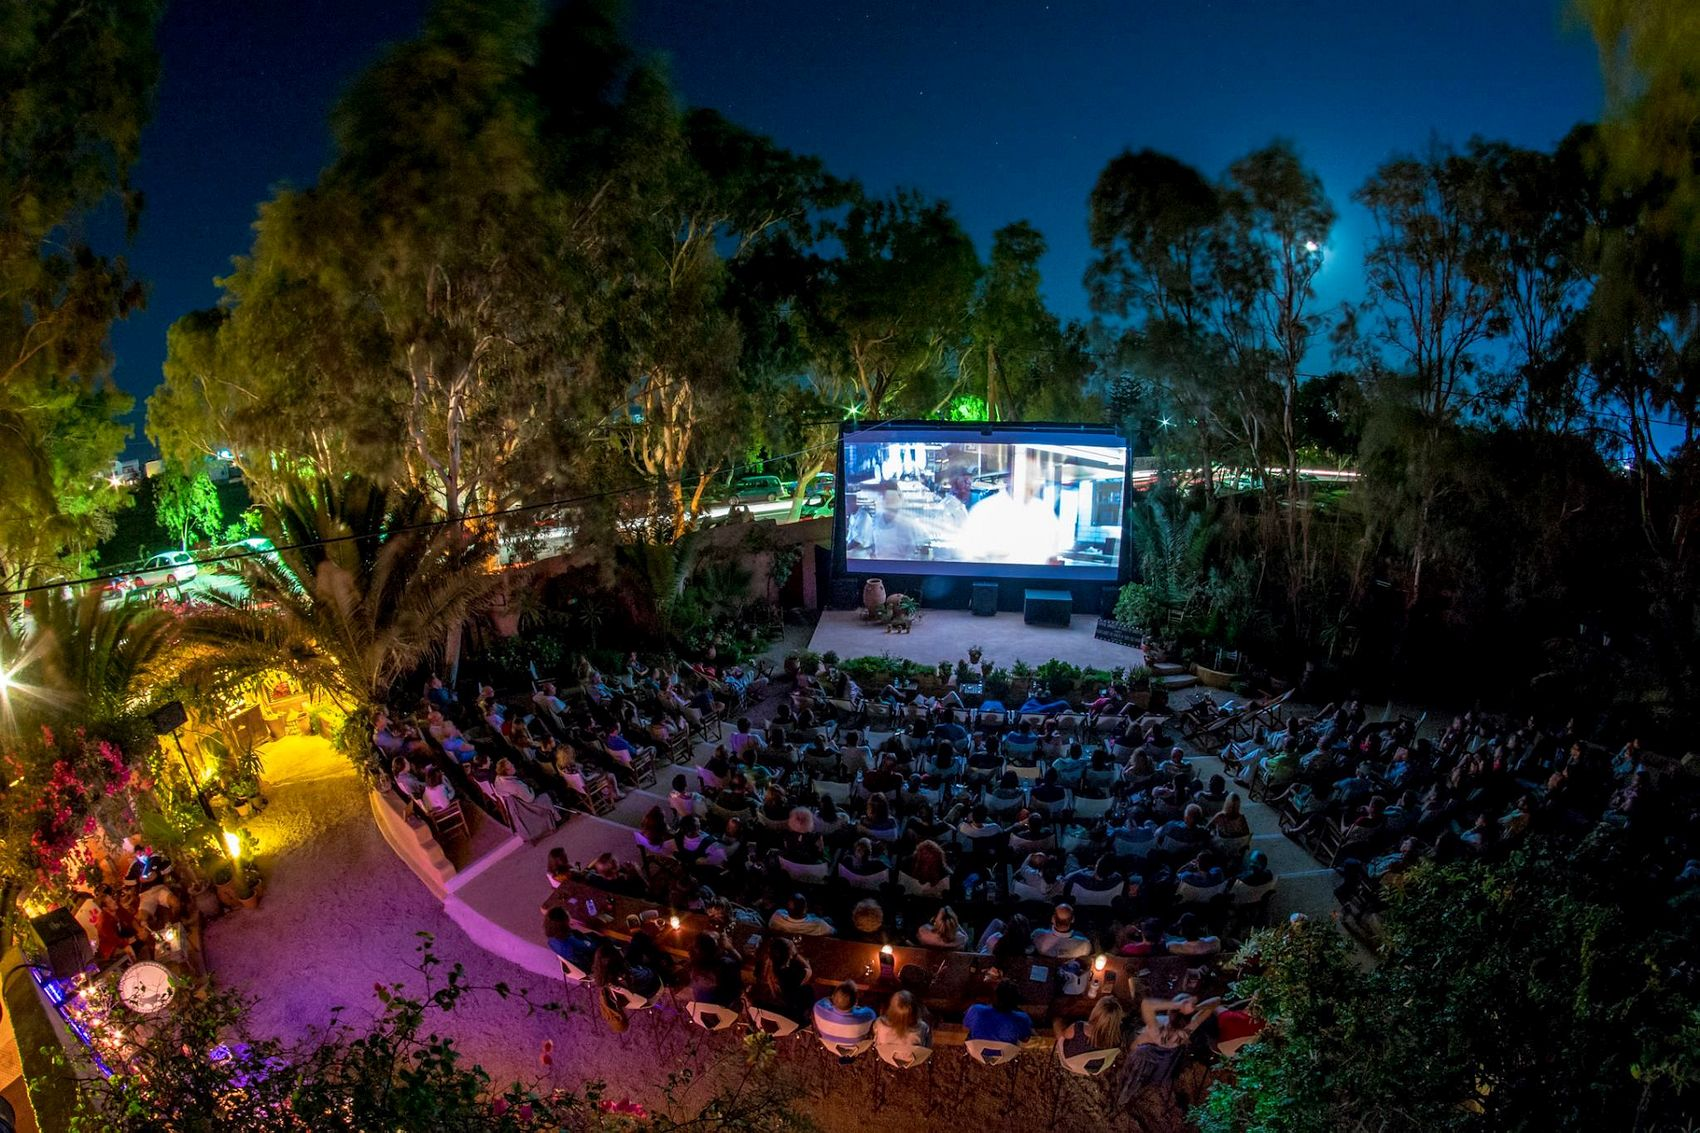 Europe 39 s best outdoor cinemas for Cinema montjuic 2016